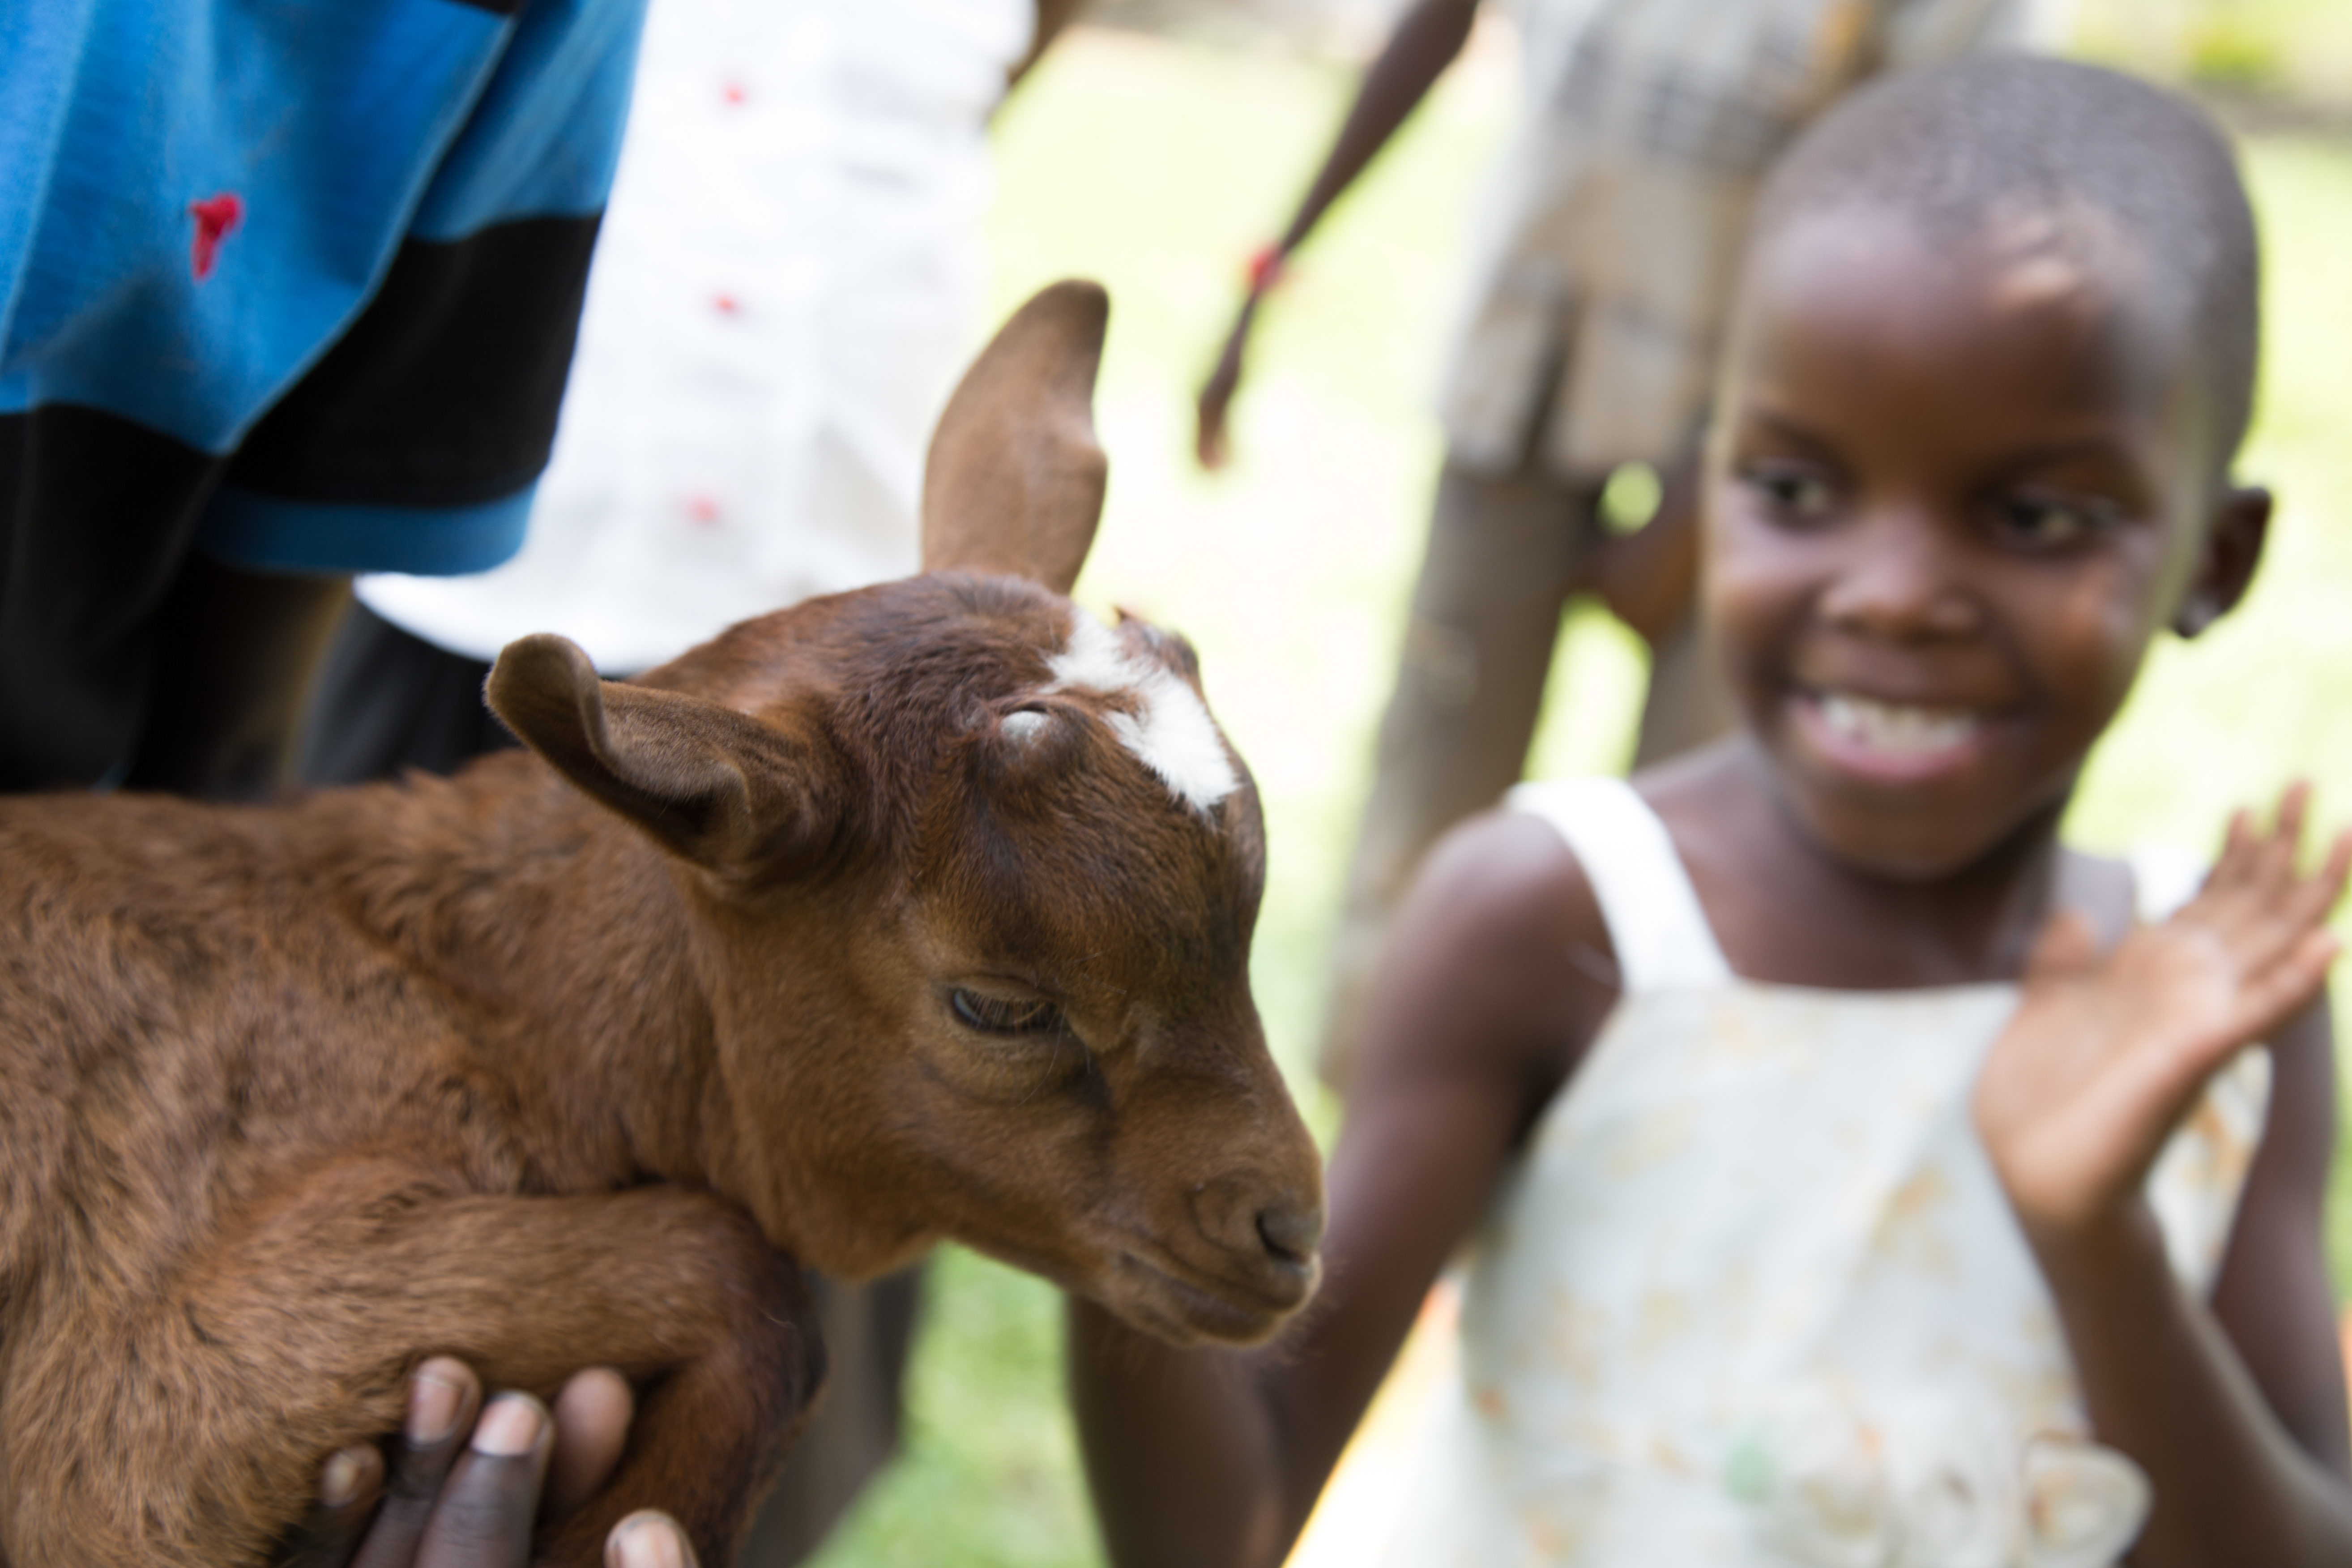 Cute goat and Ugandan child smiling